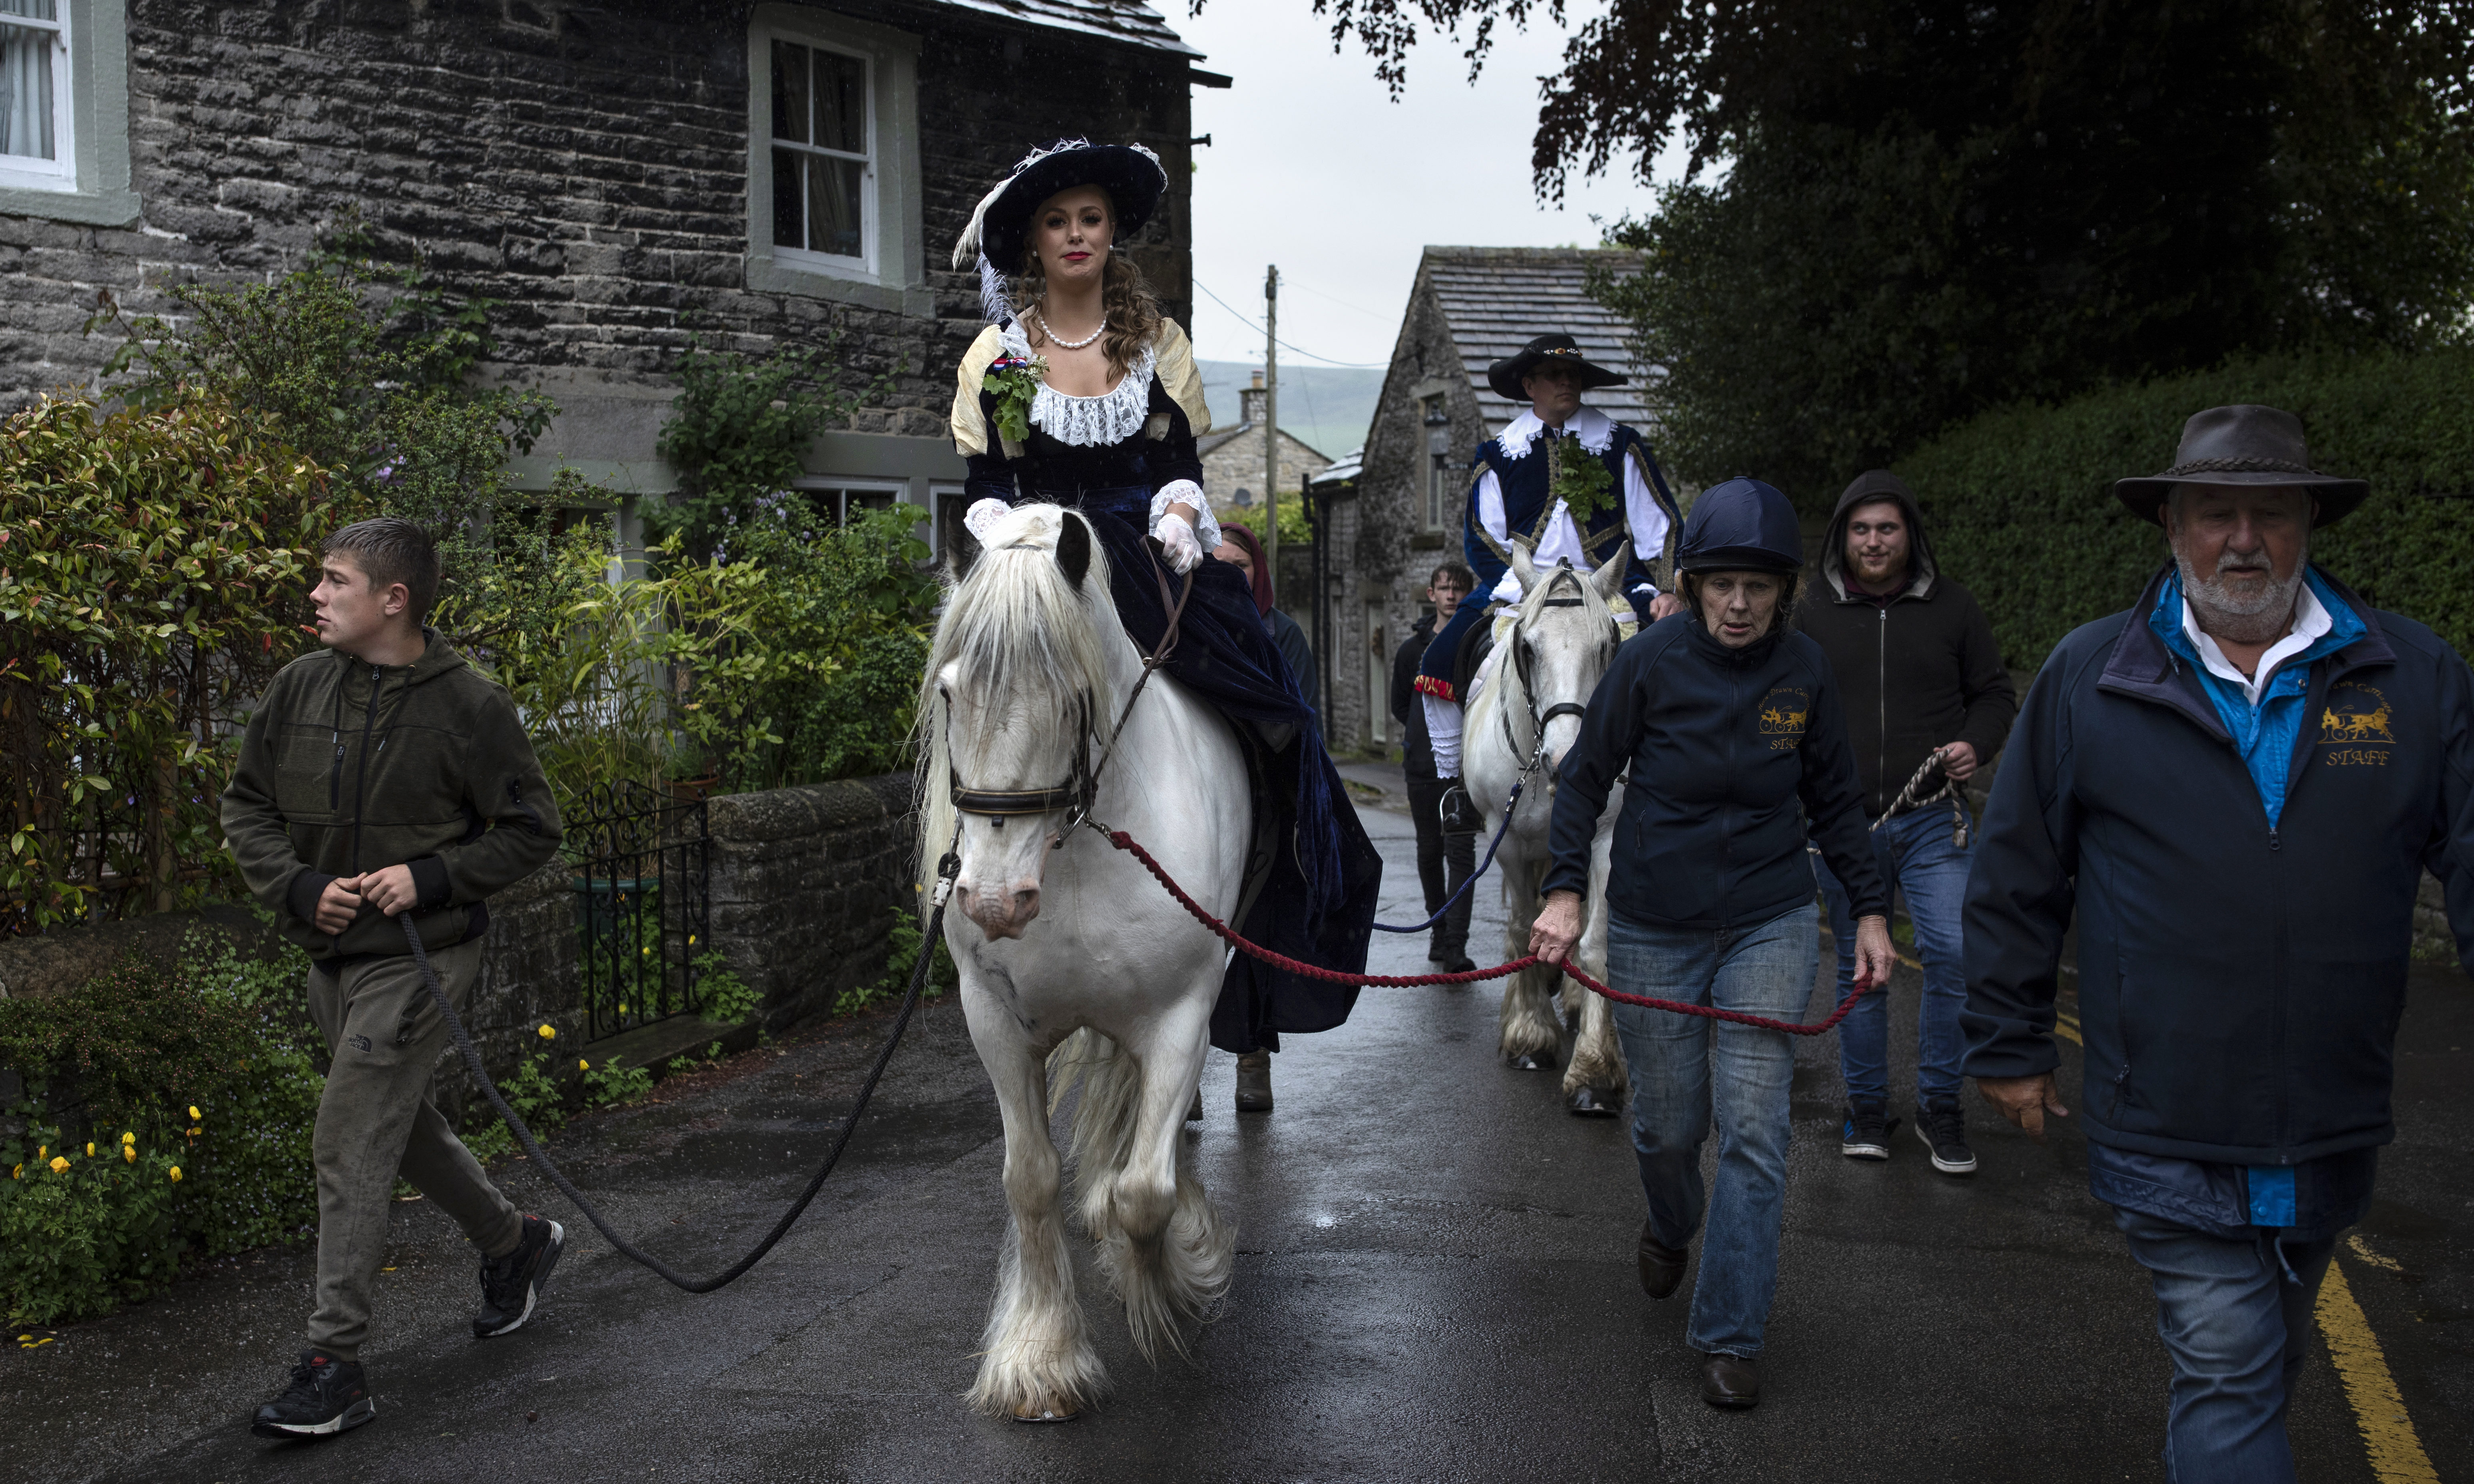 The King and the Queen walk the village bounds during 'Castleton Garland Day'.